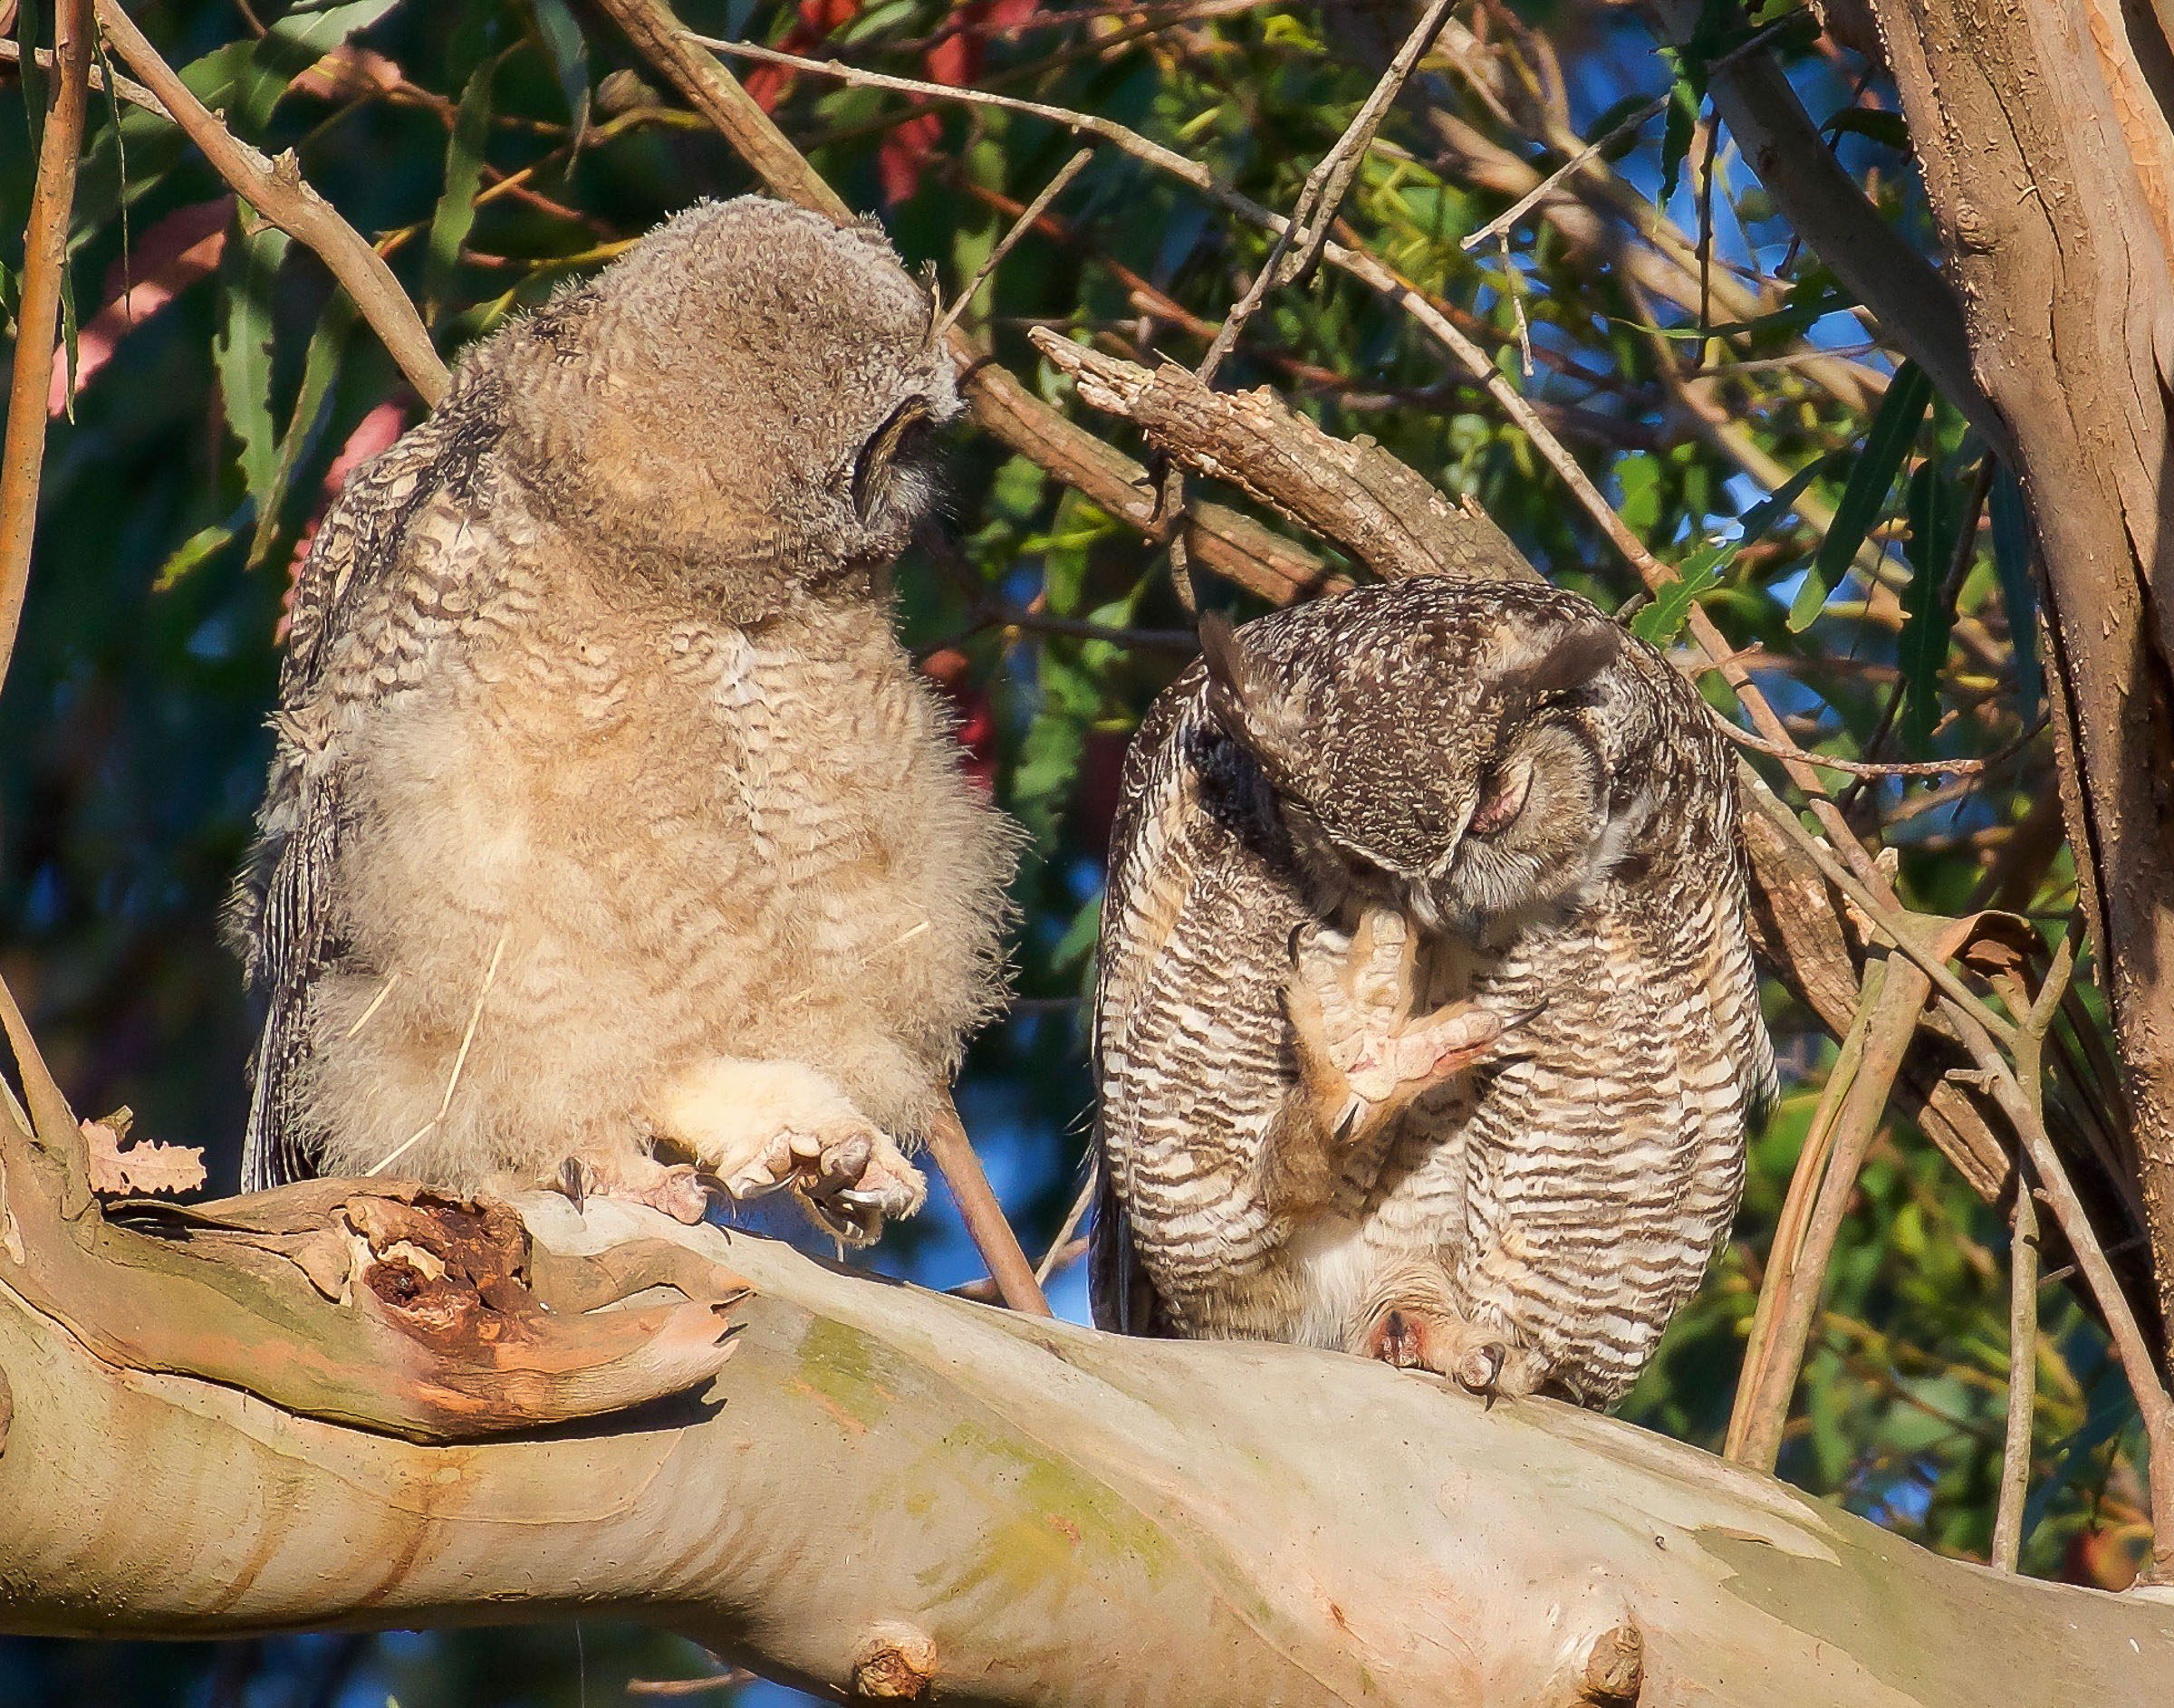 mother-owl-and-owlet-on-branch-grooming-7.jpg